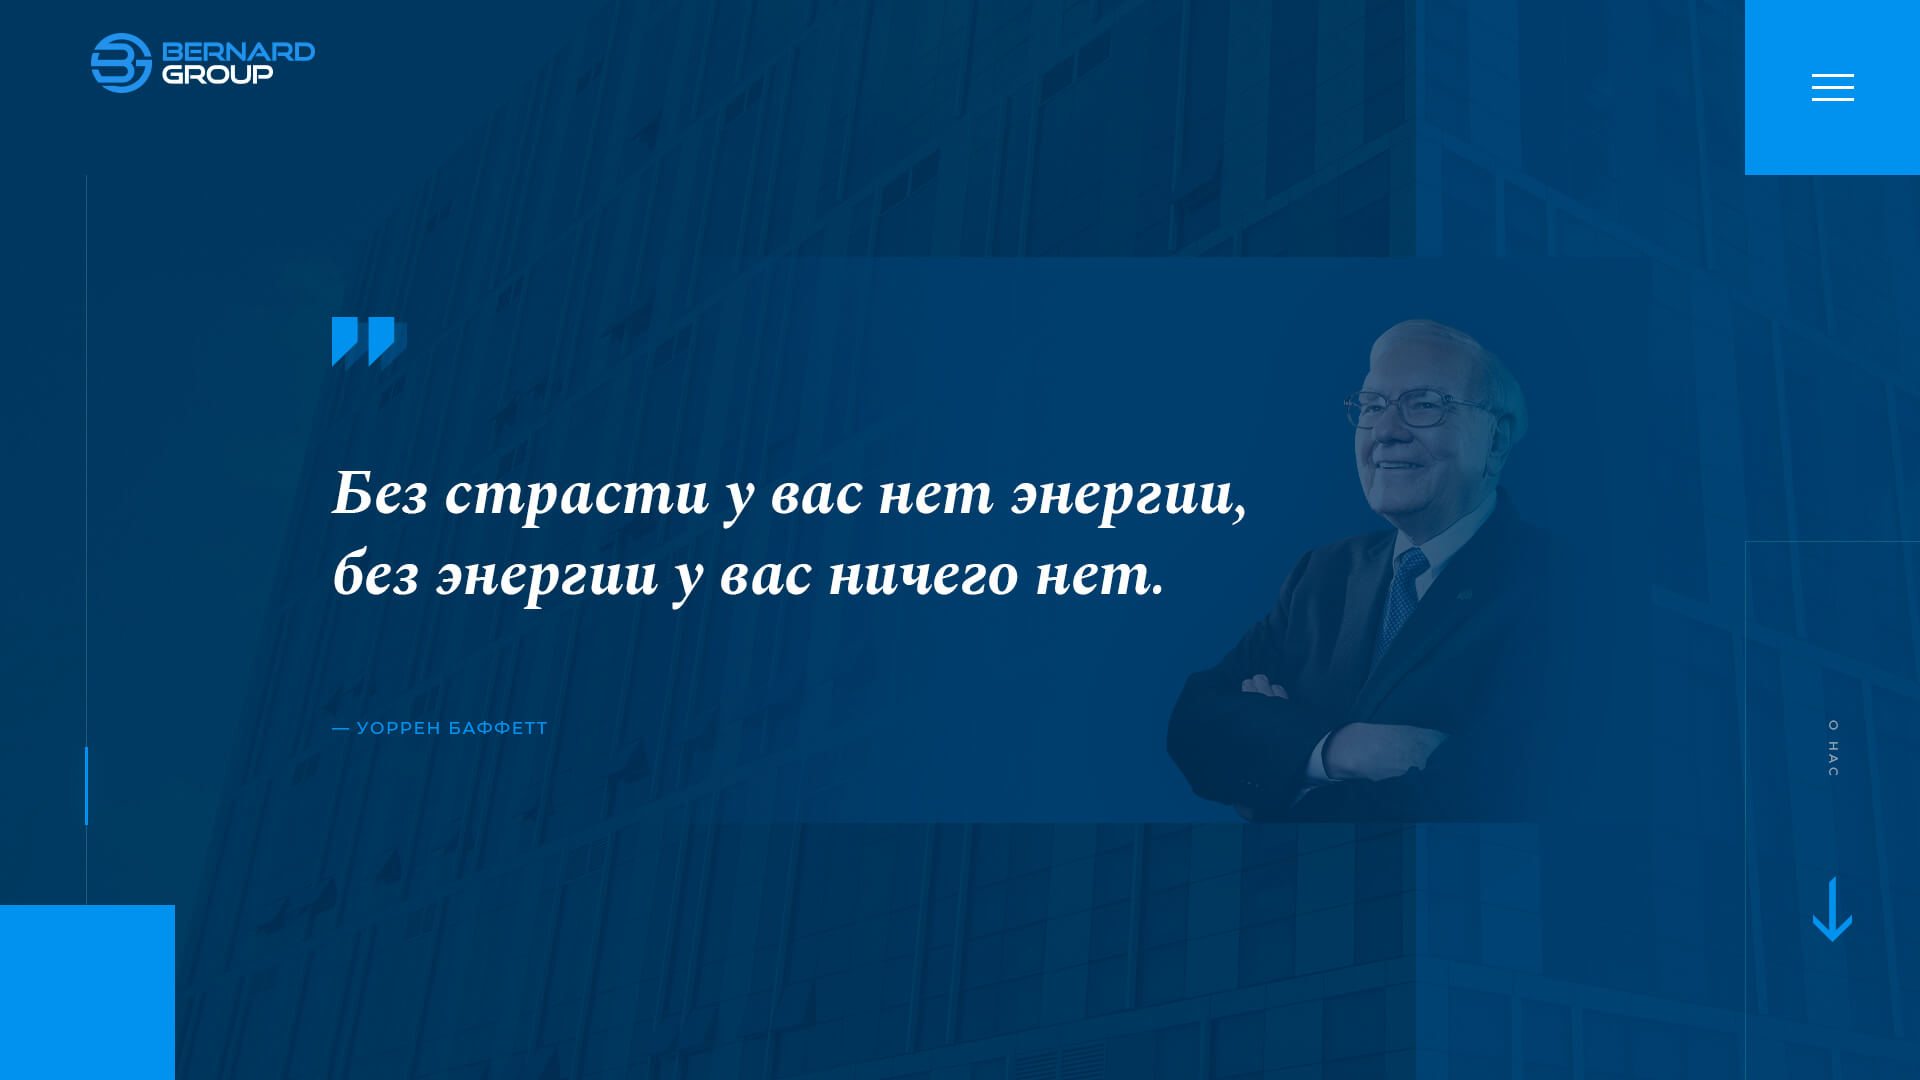 Bernard_Group_08_Quote_Page_v1_1.1